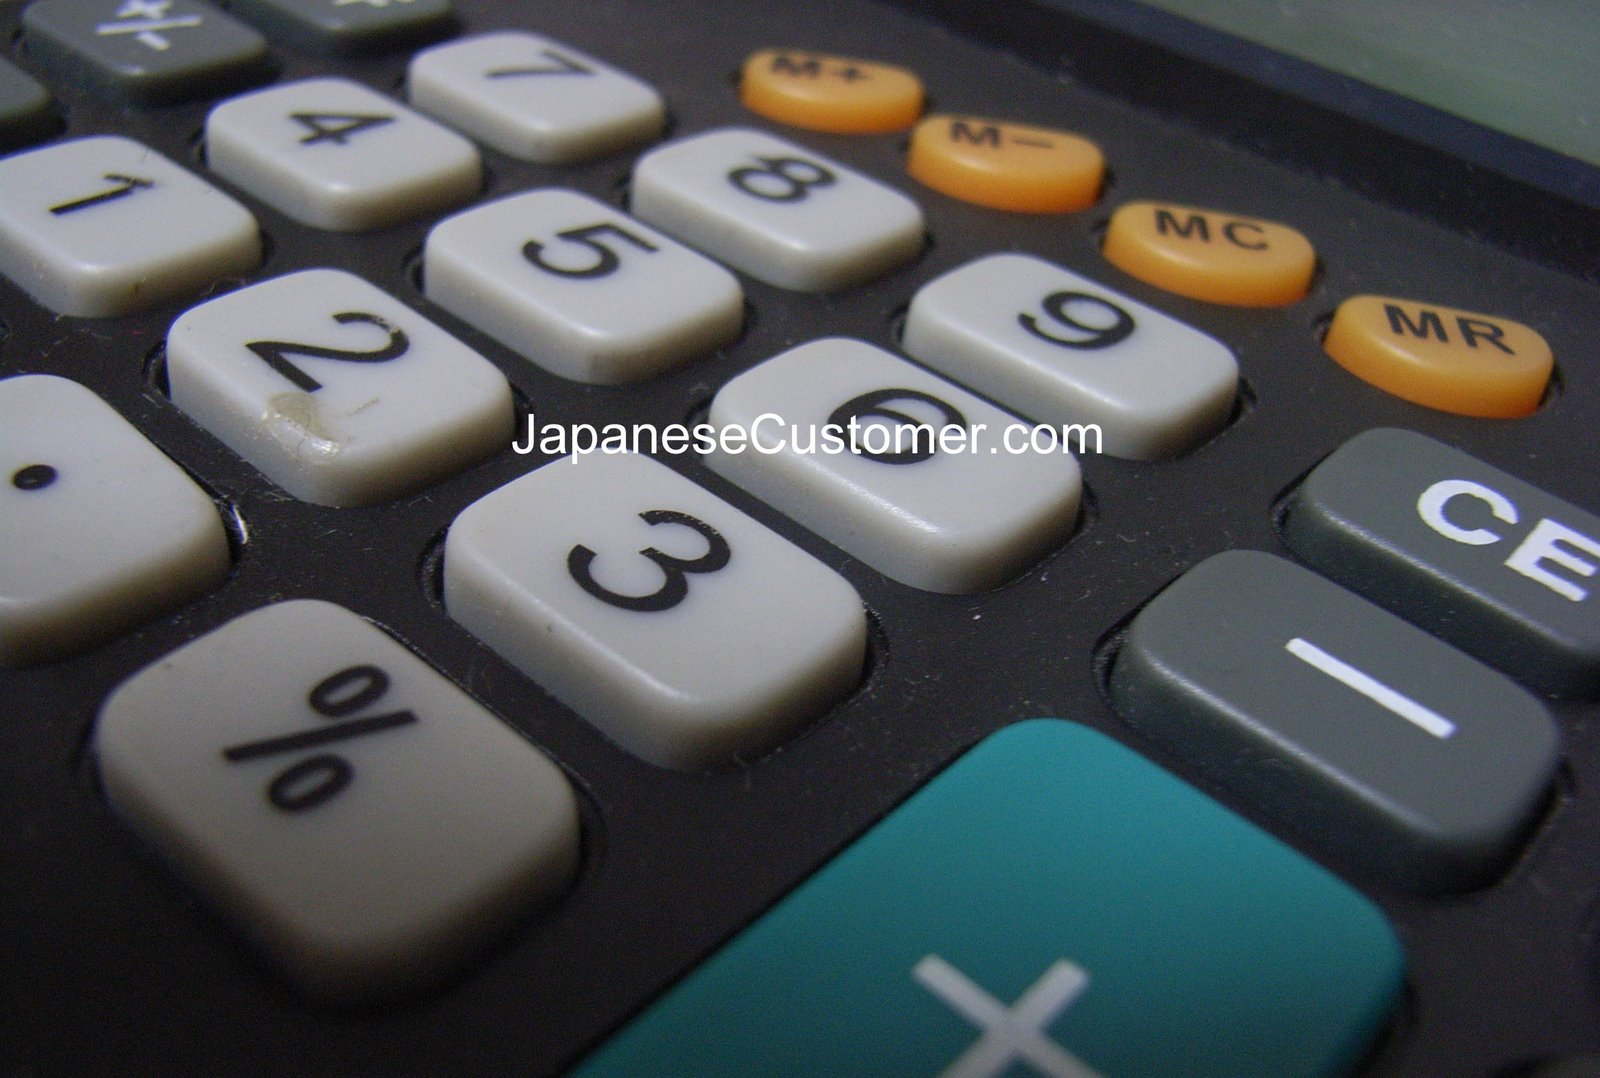 Japanese calculator Copyright Peter Hanami 2014